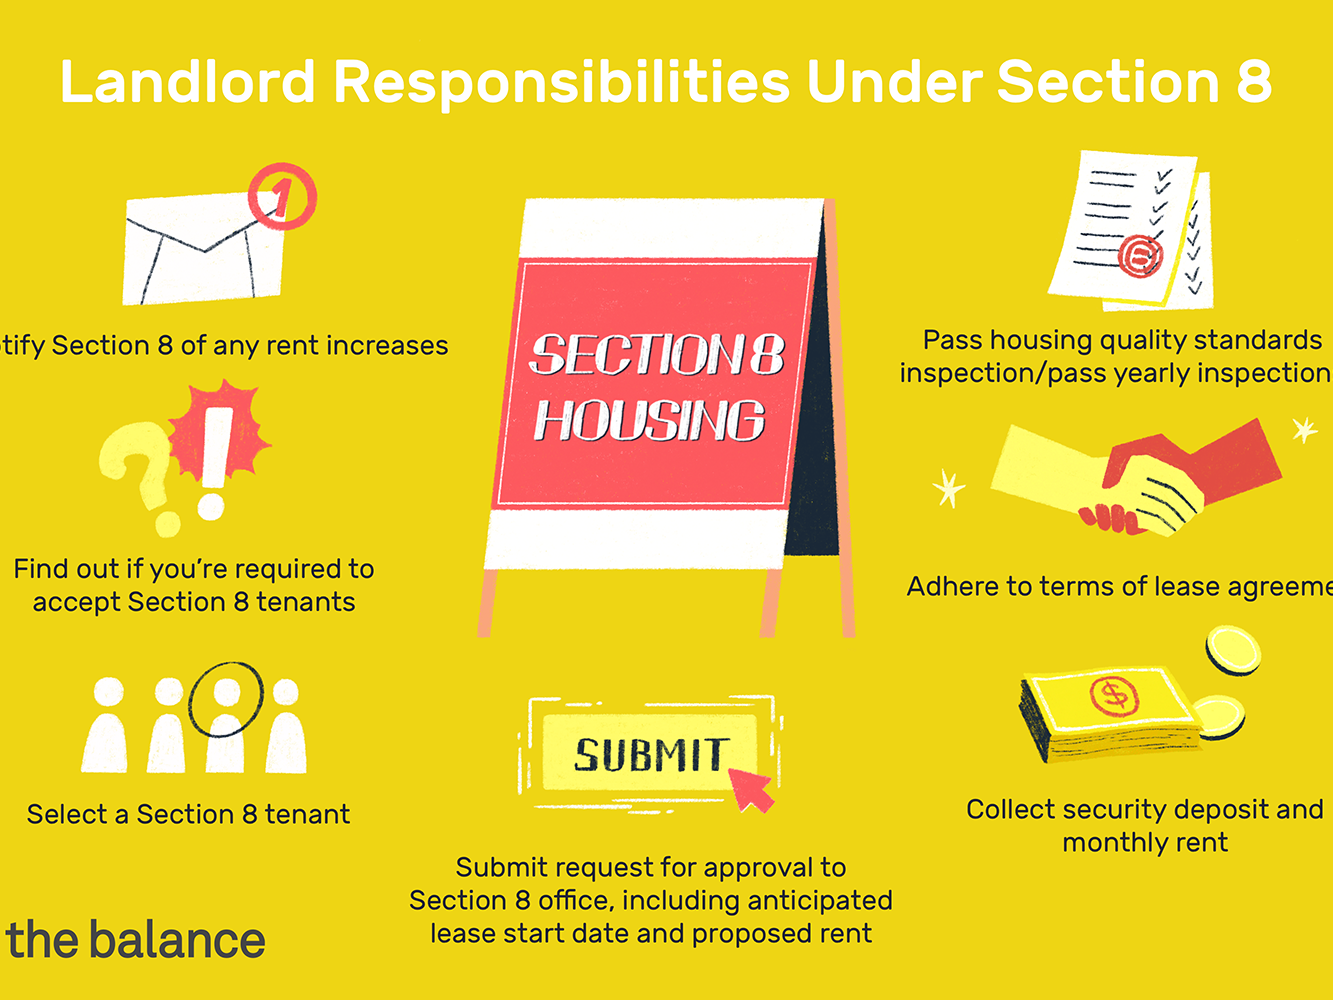 7 Landlord Responsibilities Under Section 8